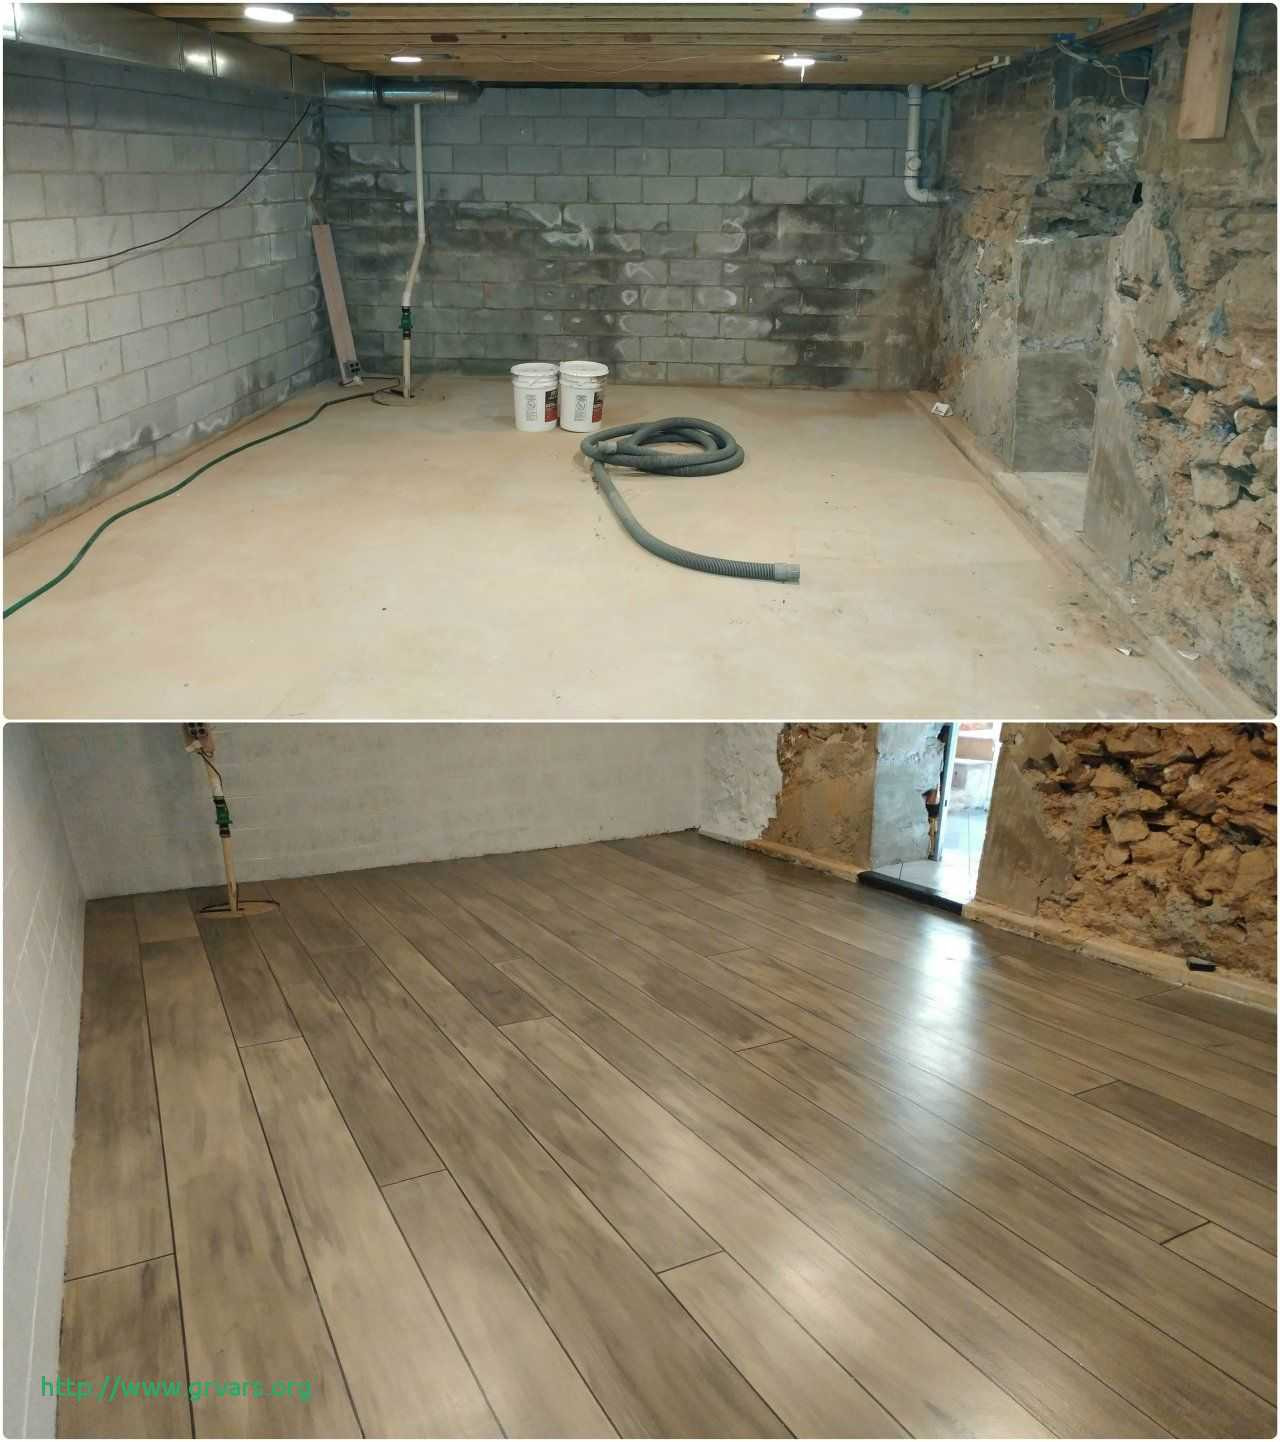 unfinished hardwood flooring near me of 25 charmant does hardwood floors increase home value ideas blog for does hardwood floors increase home value frais basement refinished with concrete wood ardmore pa